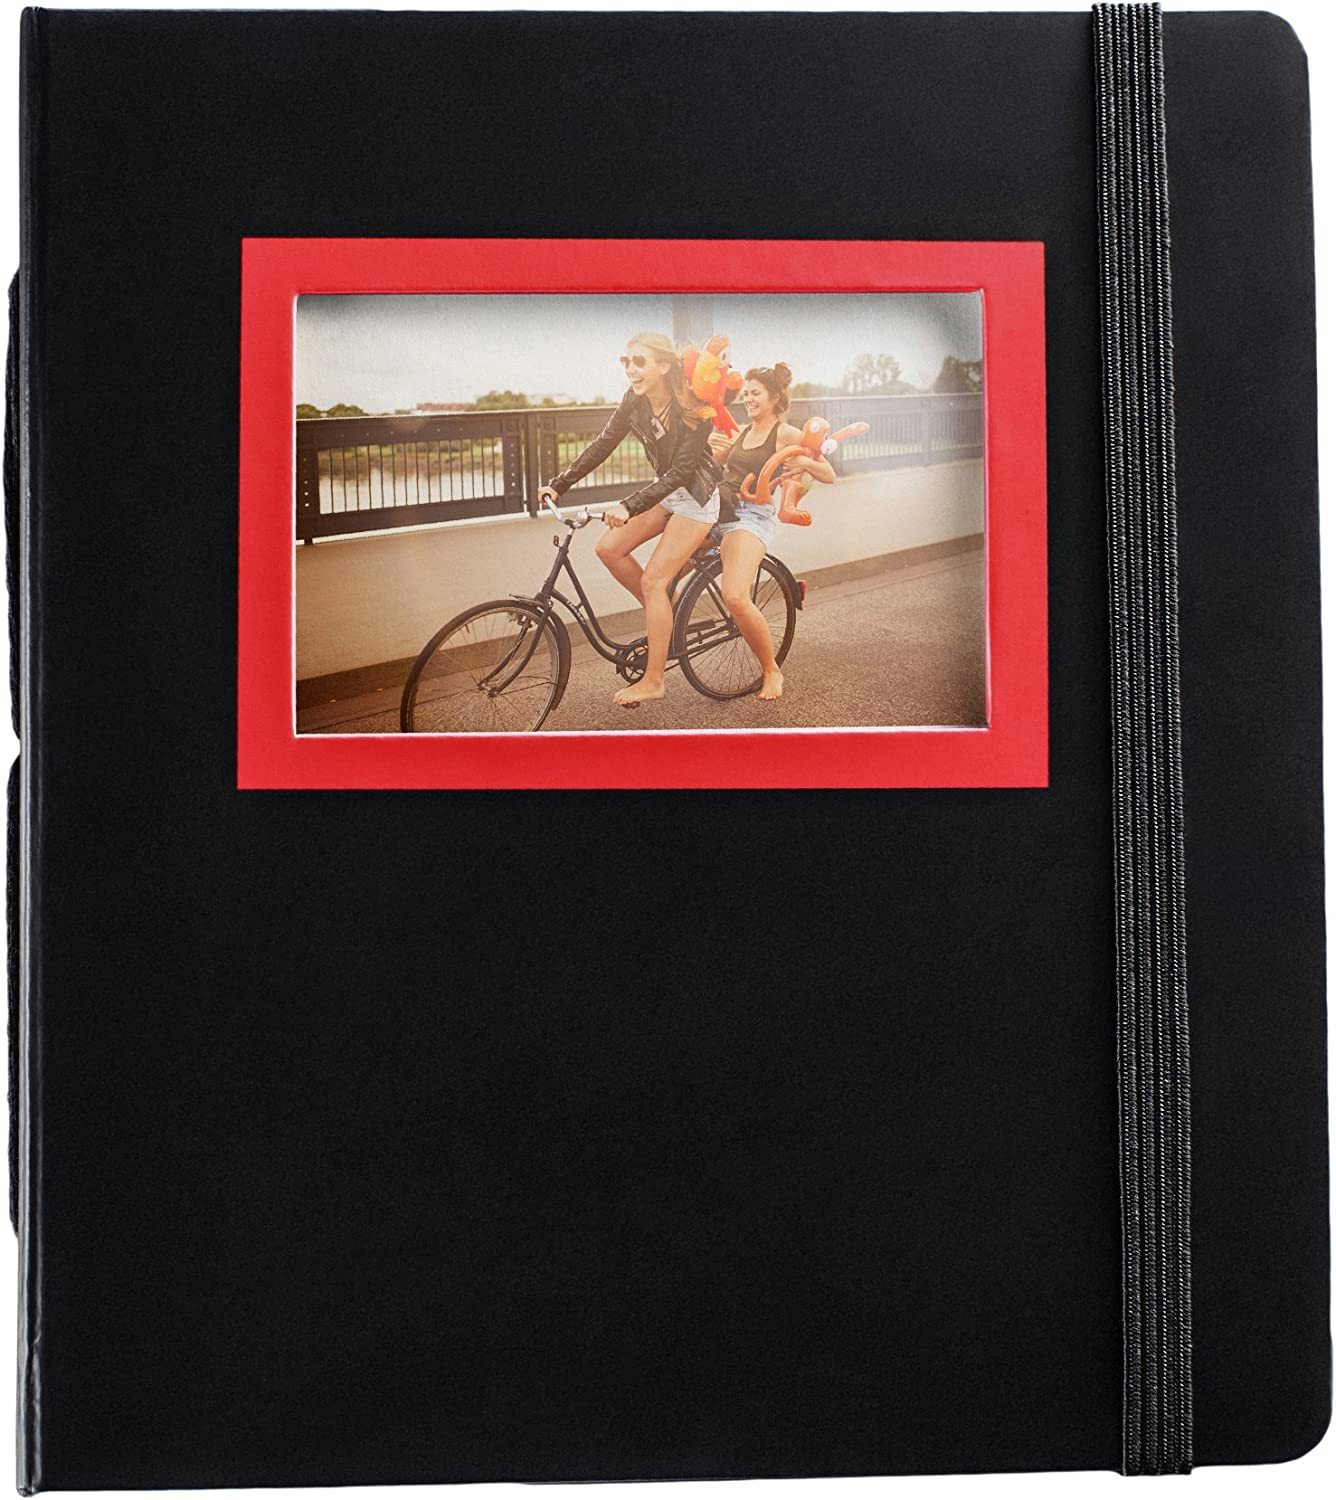 HP Sprocket Red and Black Photo Album (2HS30A)